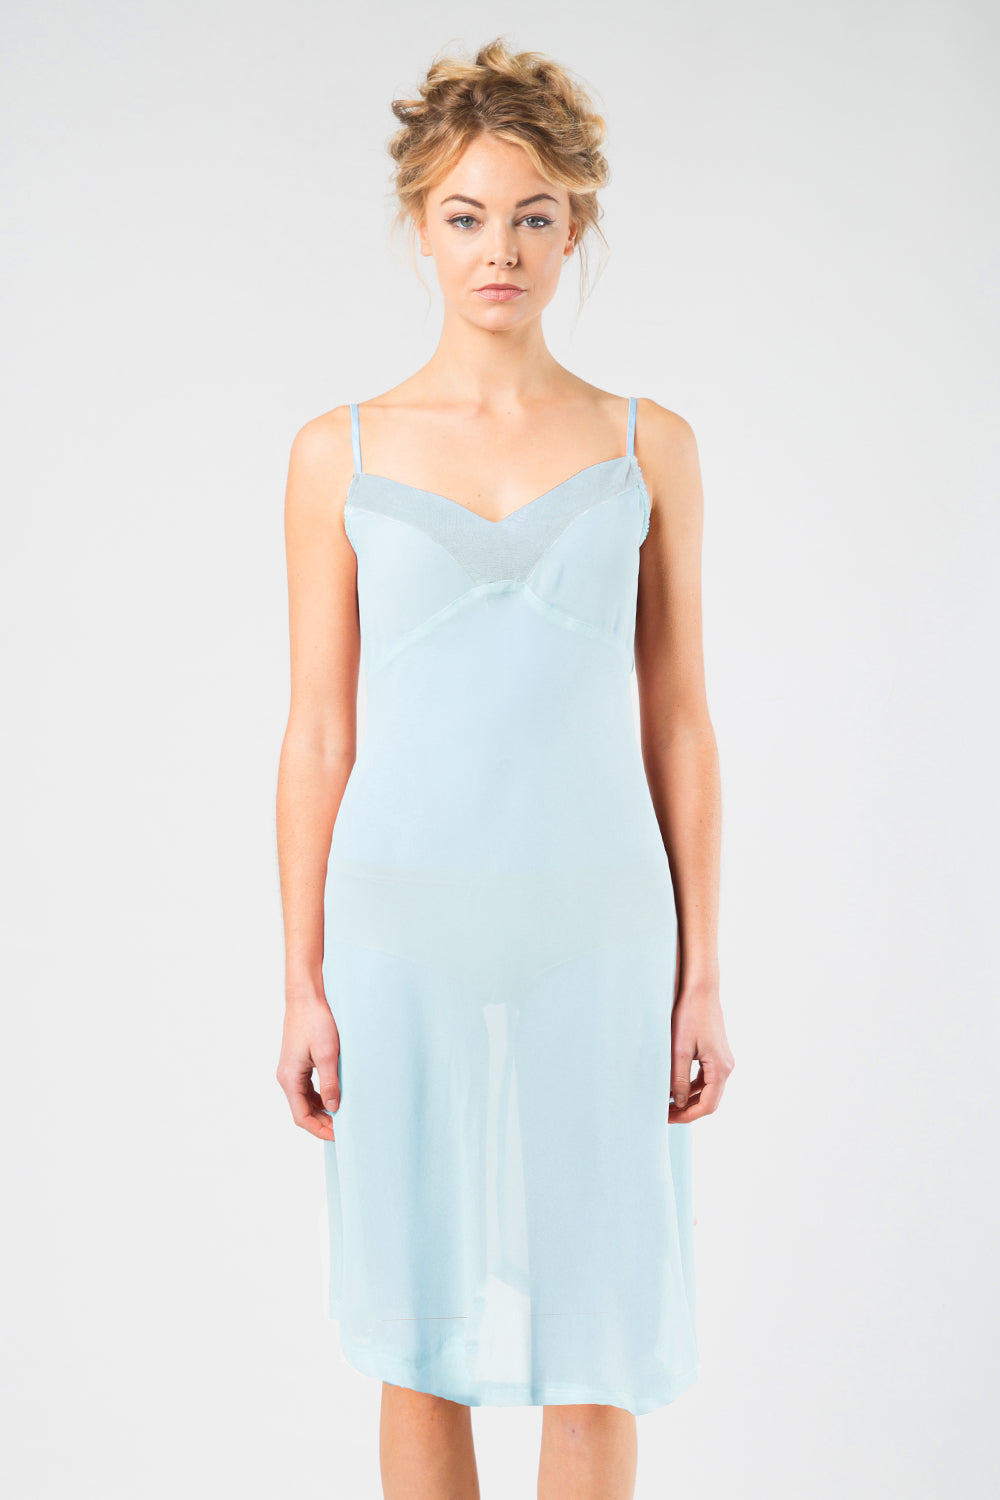 Pam Sheer Slip | Blue Slip | Sheer Slip | Undergarments | Essentials | Nightwear | Annah Stretton